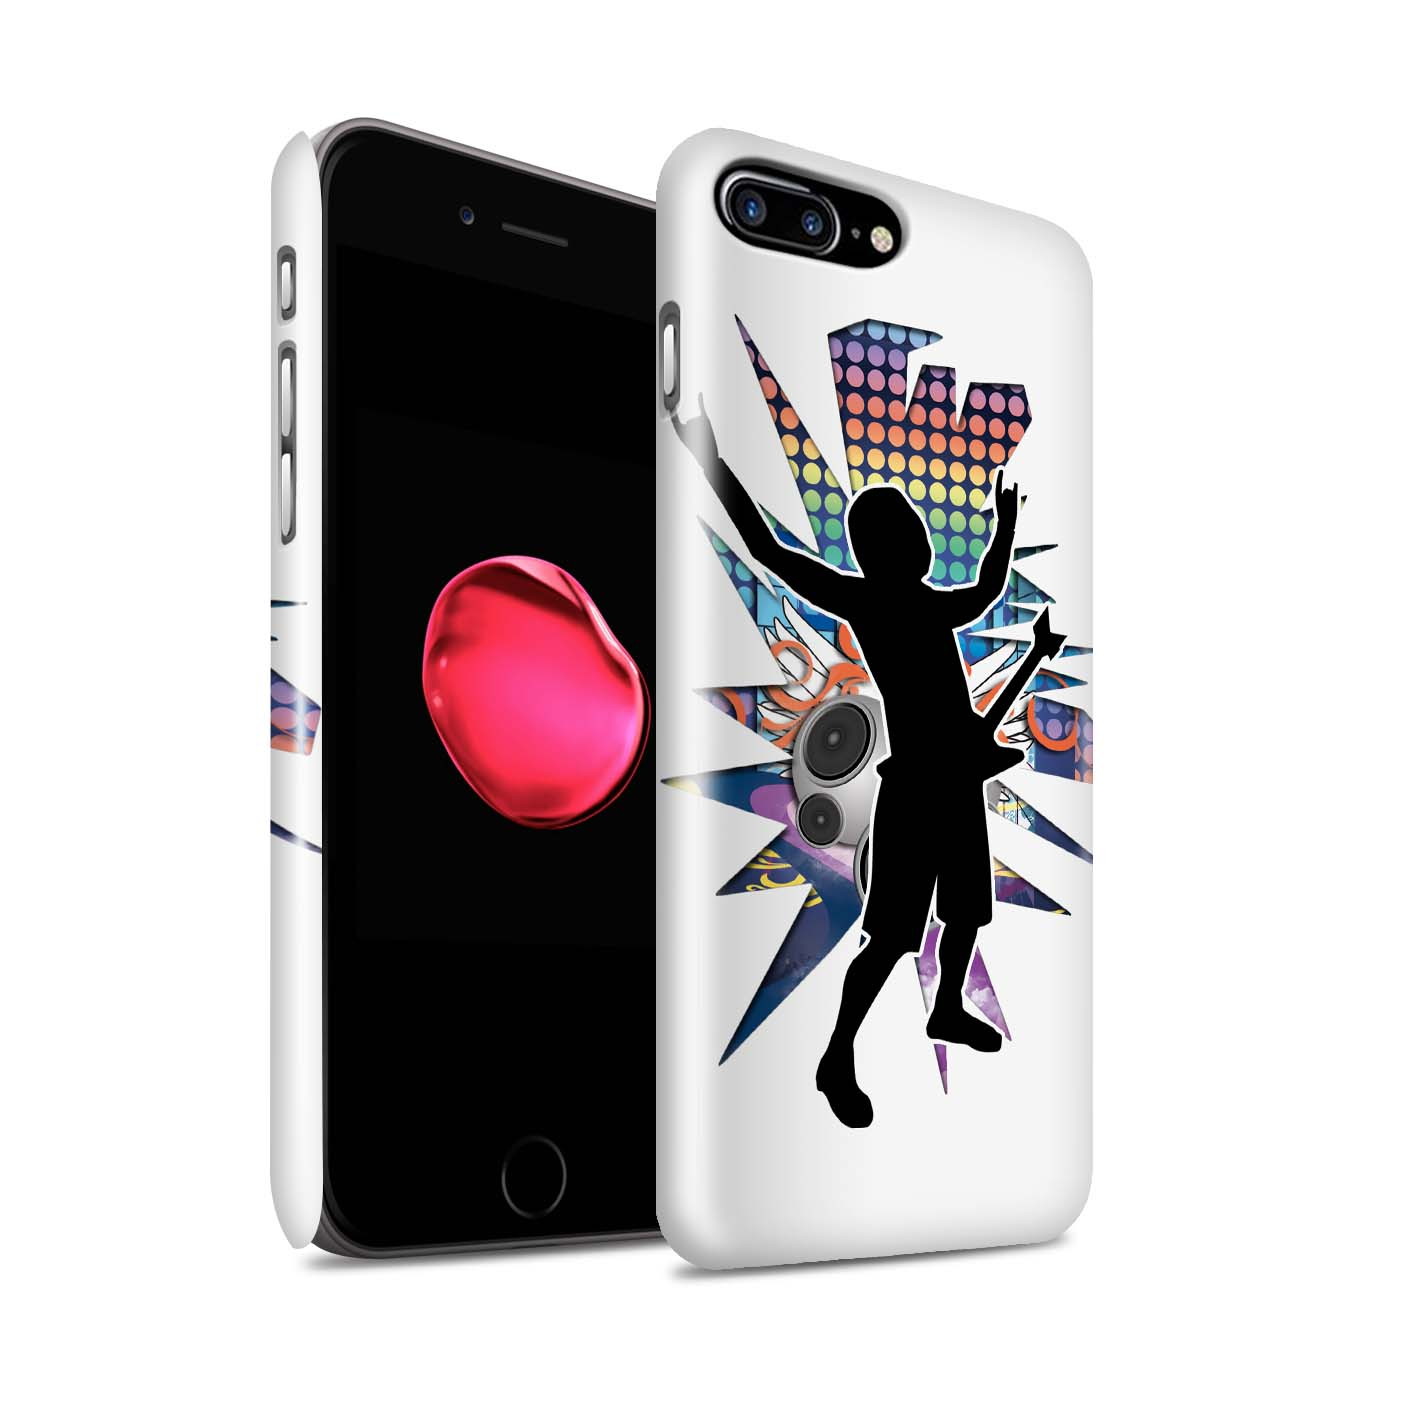 Coque-Etui-Brillant-de-STUFF4-pour-Apple-iPhone-7-Plus-Rock-Star-Pose